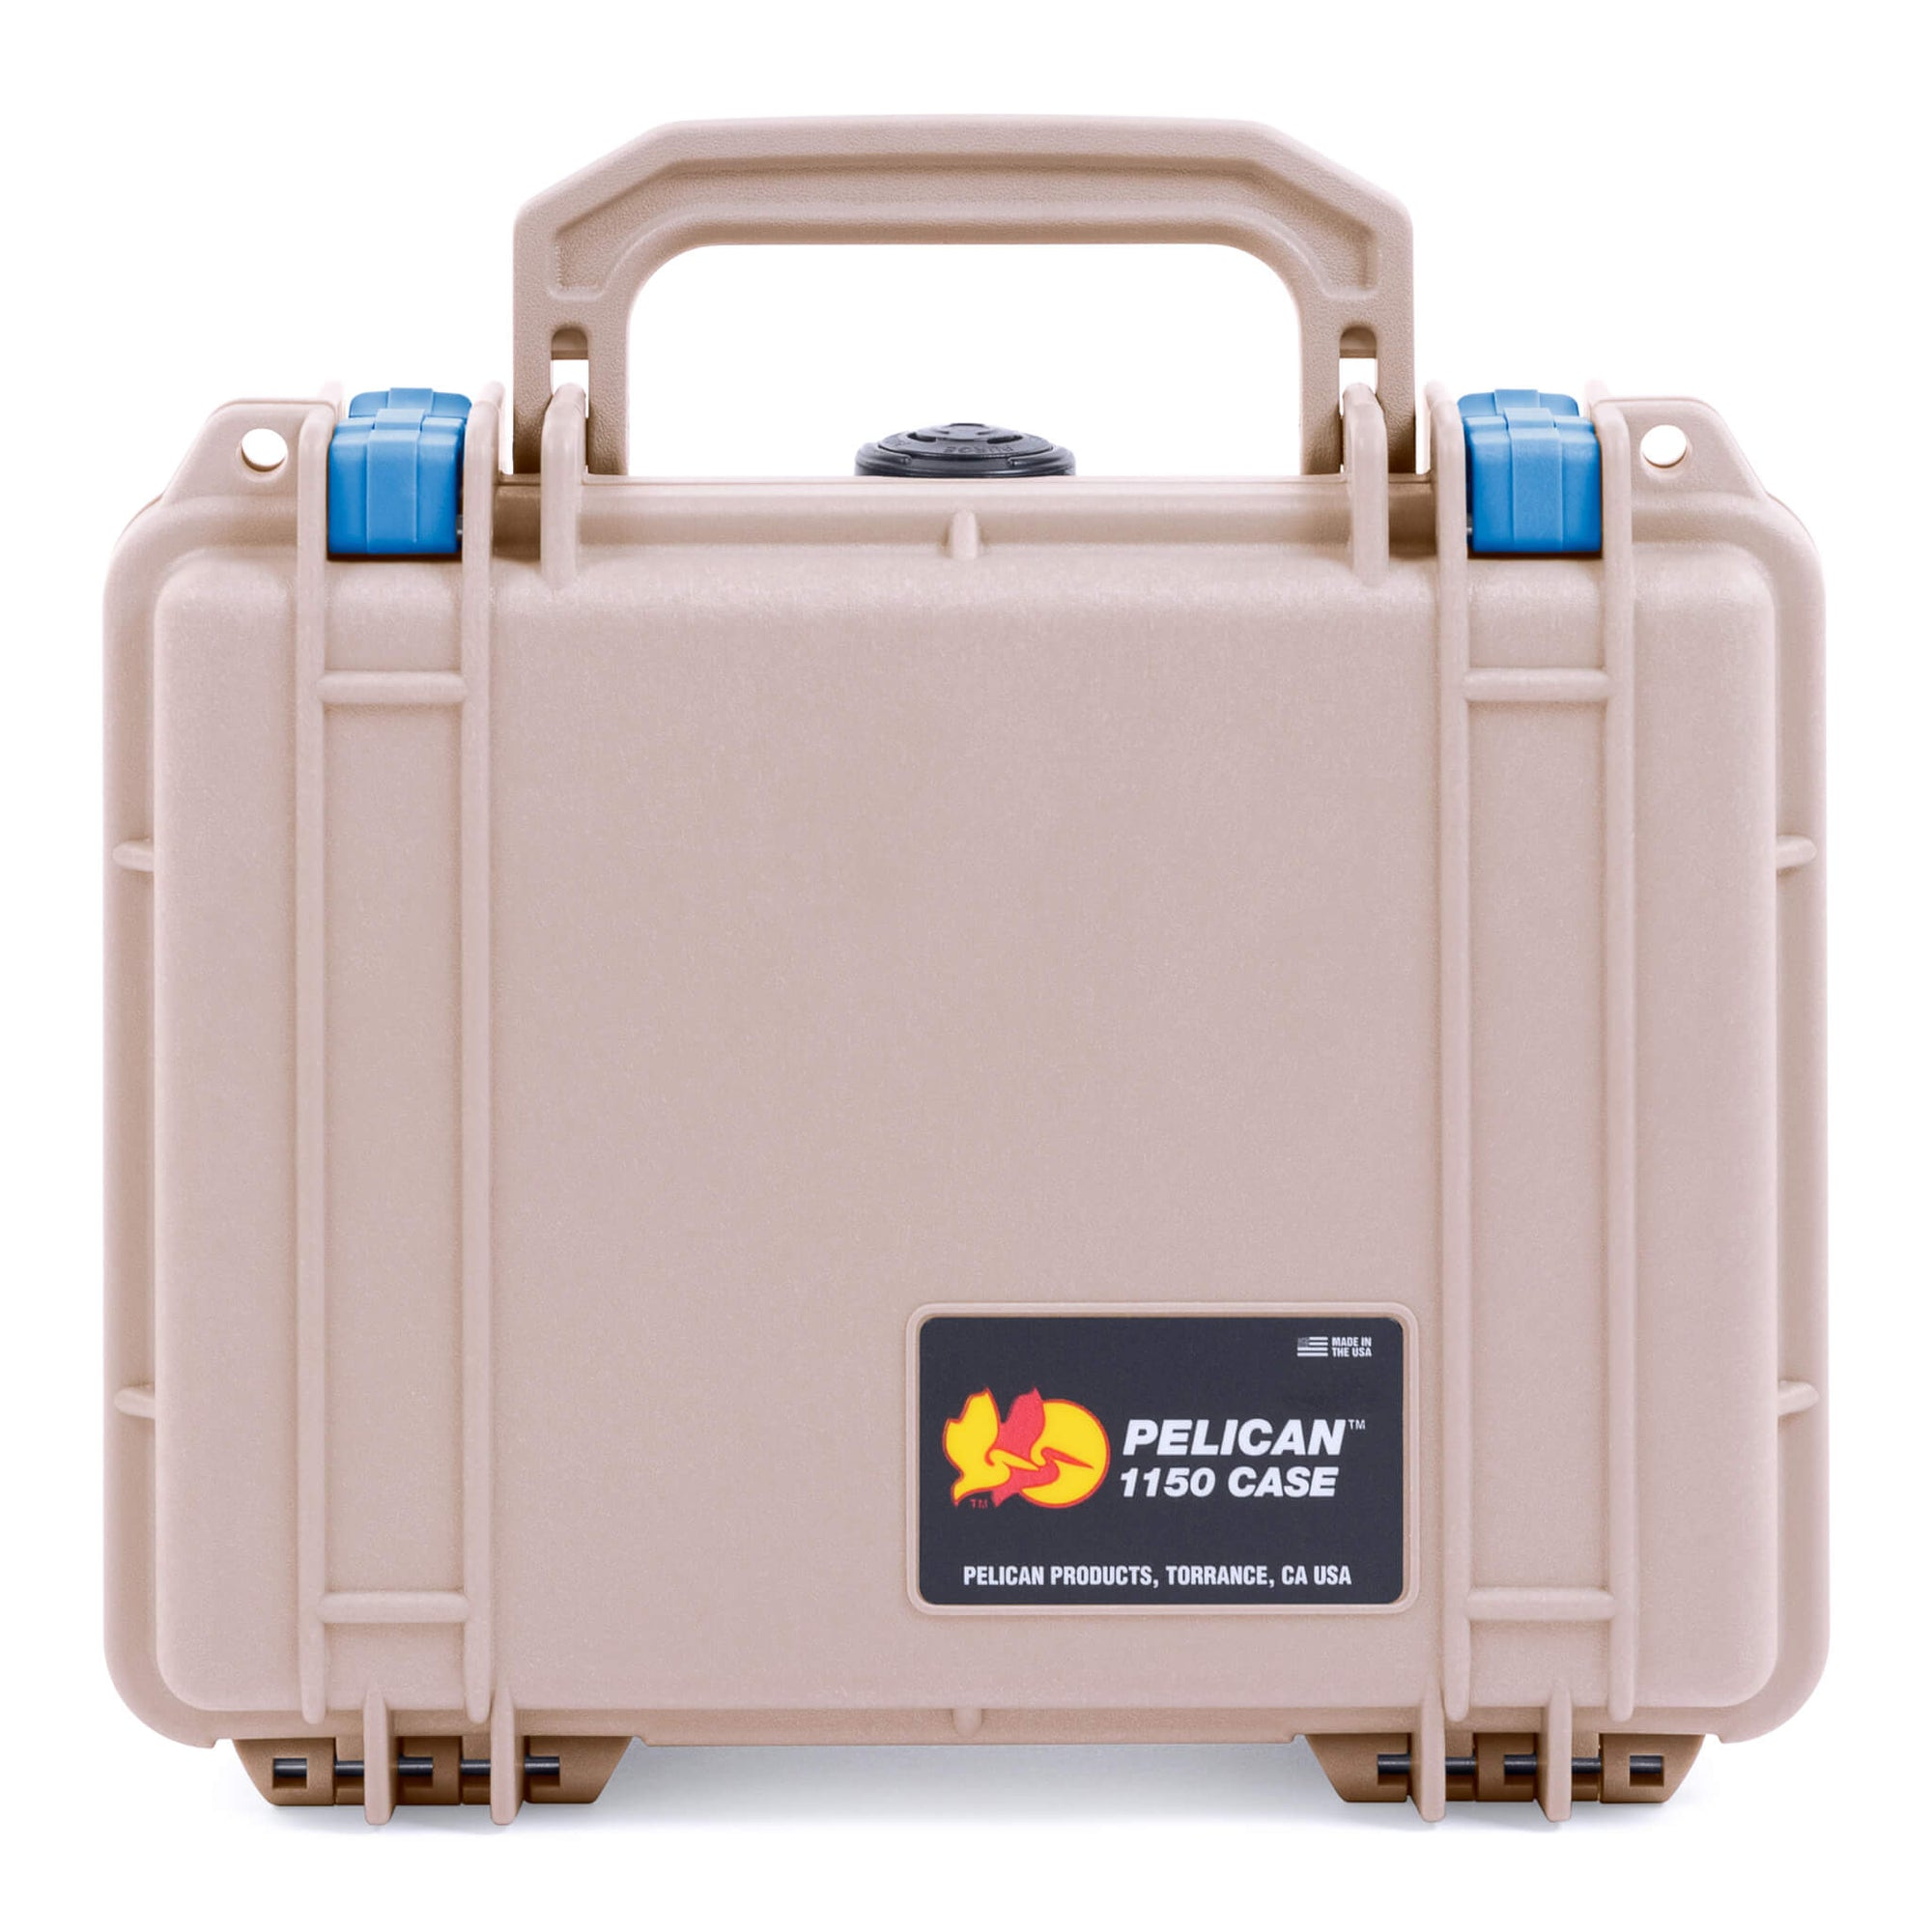 Pelican 1150 Case, Desert Tan with Blue Latches - Pelican Color Case